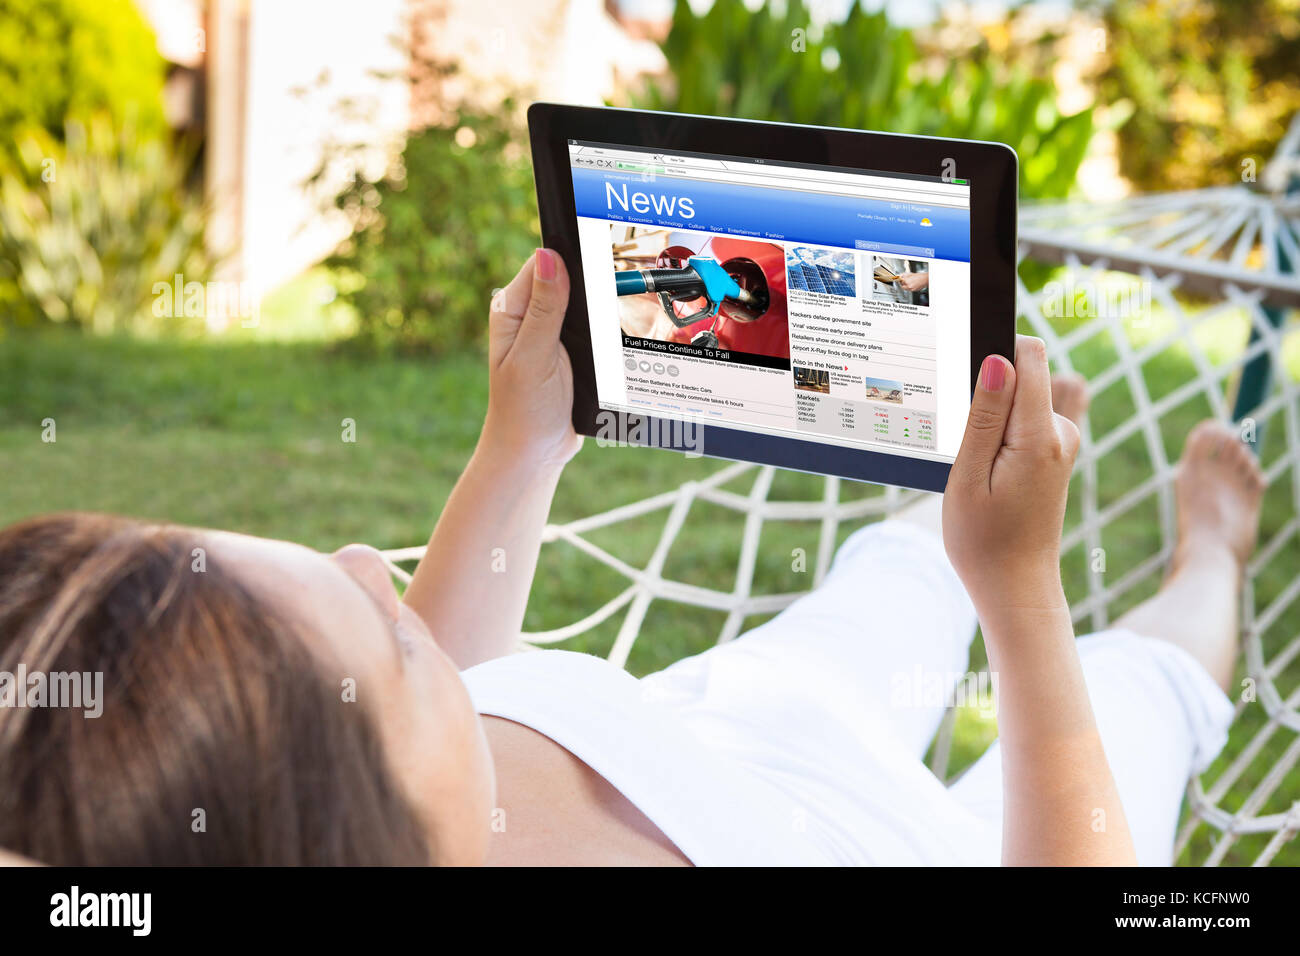 Close-up Of Woman On Hammock Reading News On Her Digital Tablet - Stock Image